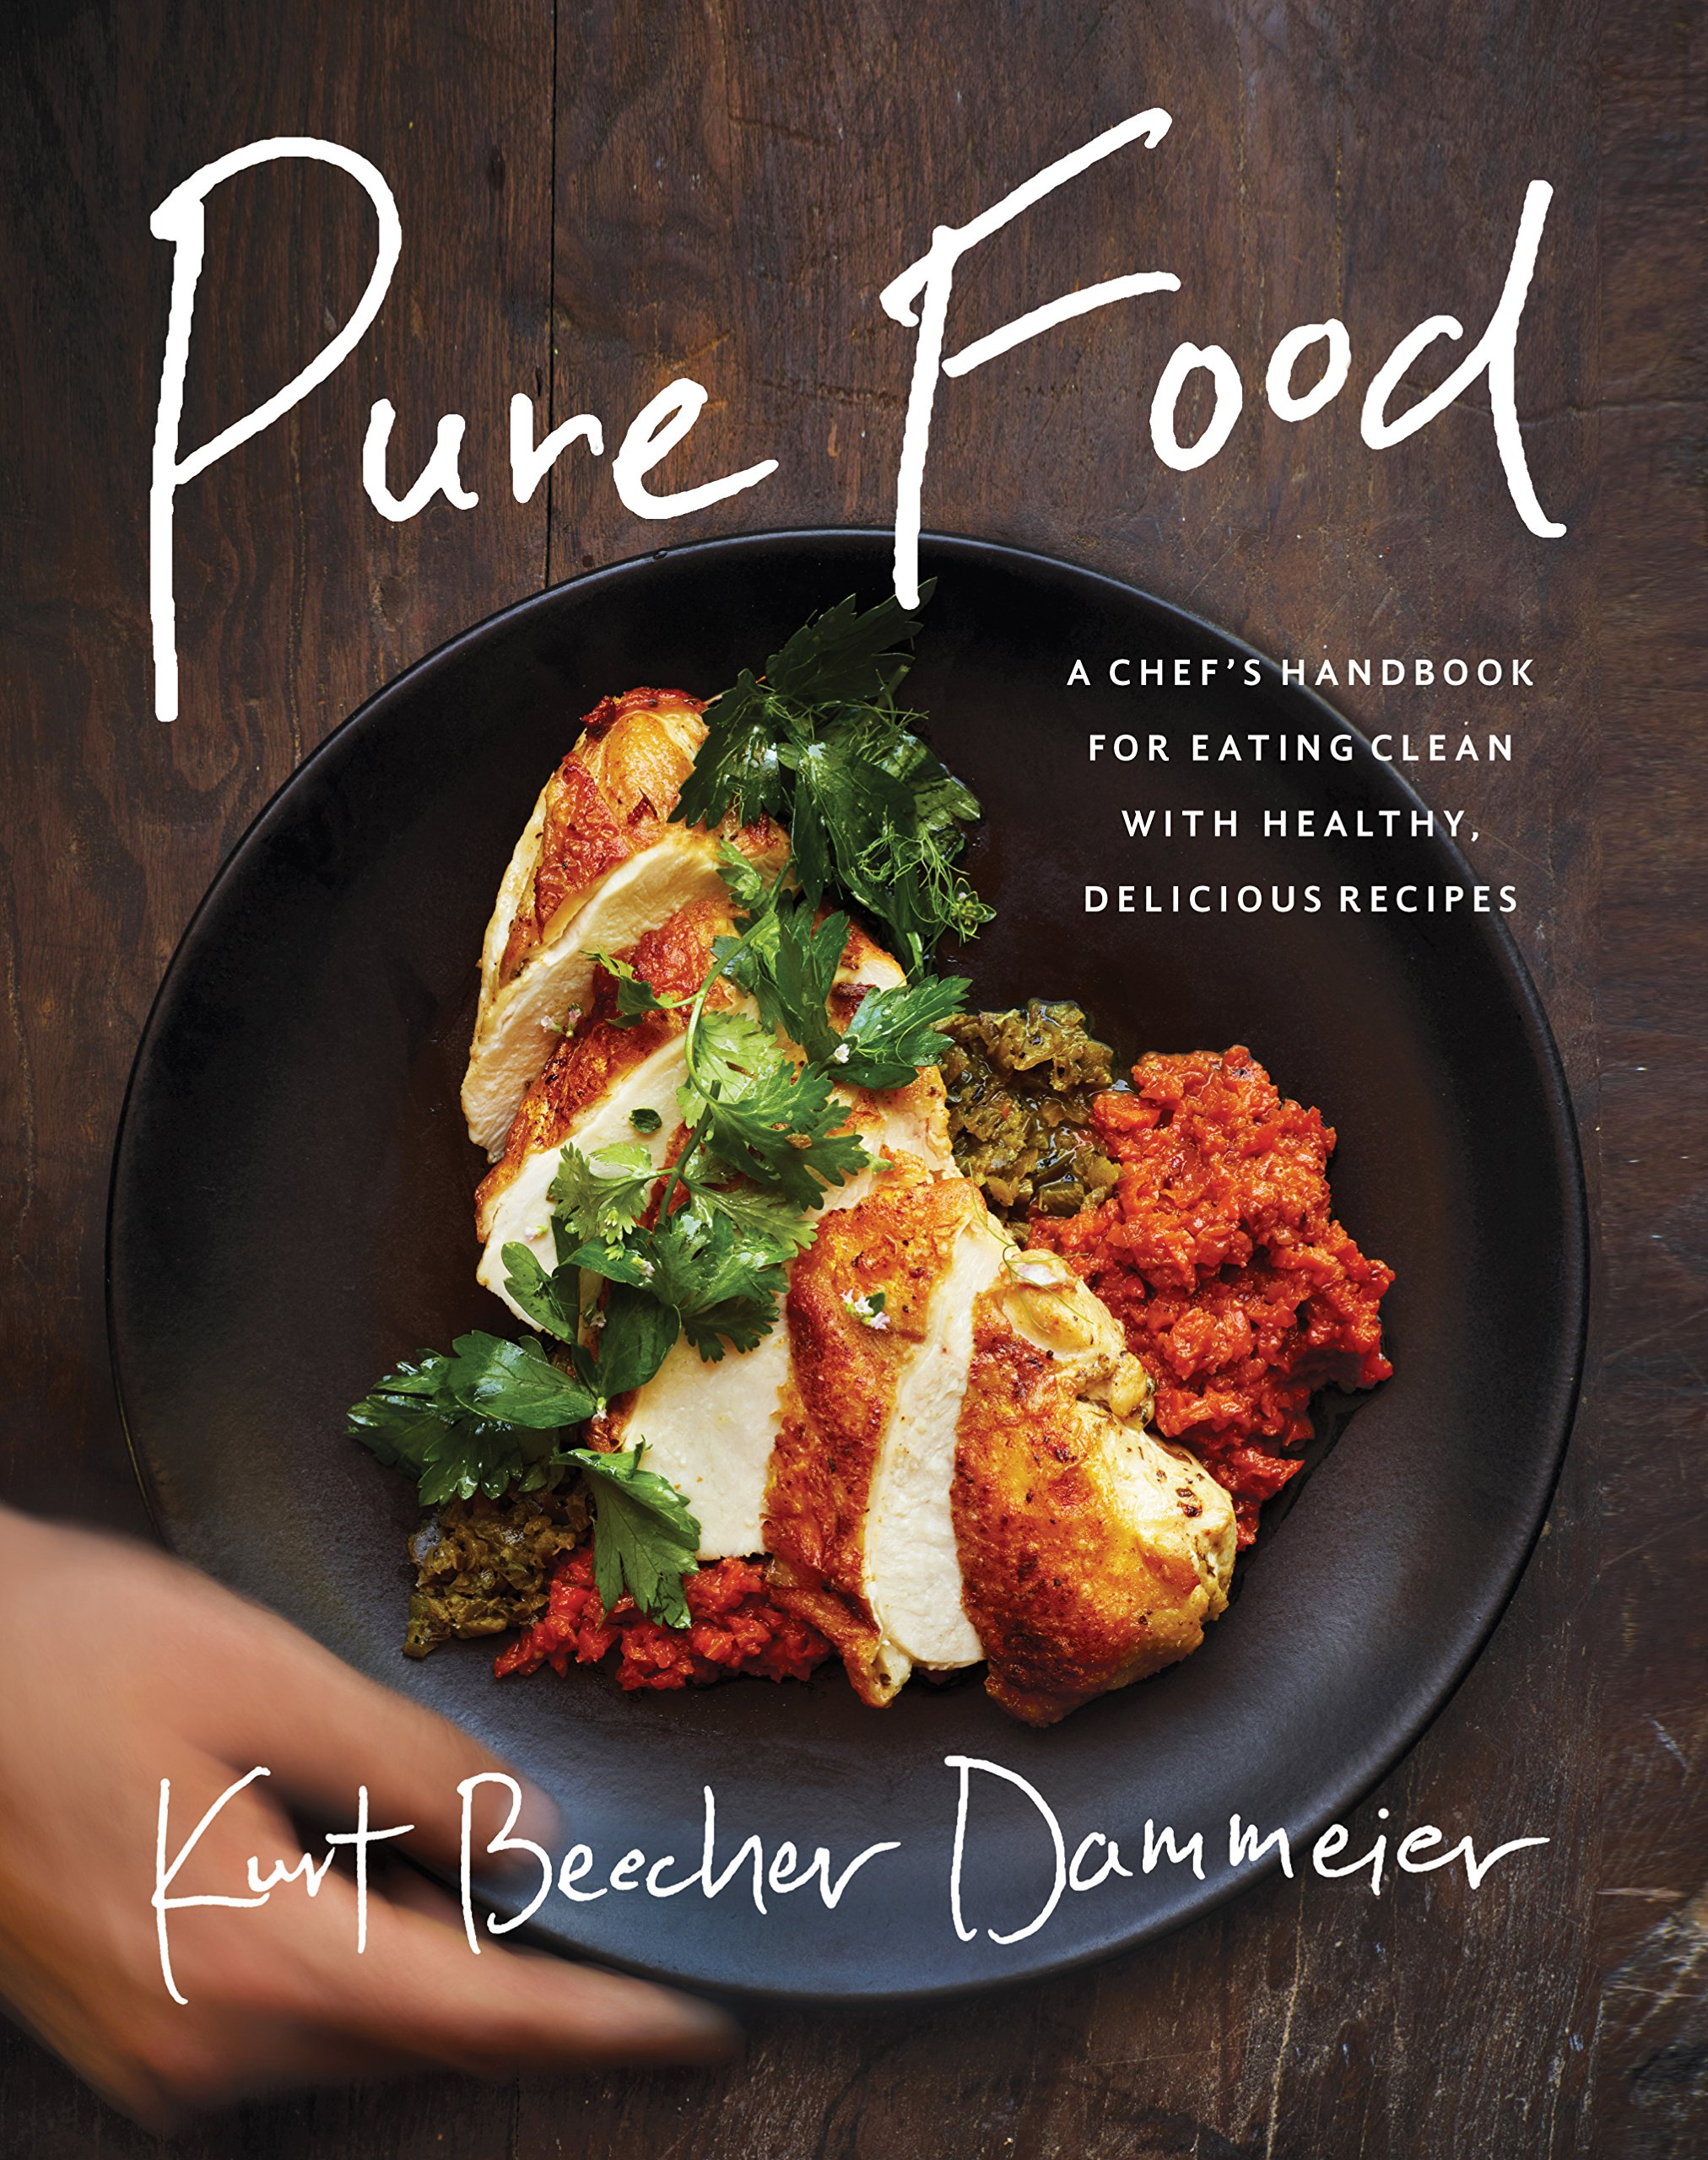 Pure food a chefs handbook for eating clean with healthy pure food a chefs handbook for eating clean with healthy delicious recipes kurt beecher dammeier 9781942952176 amazon books forumfinder Gallery